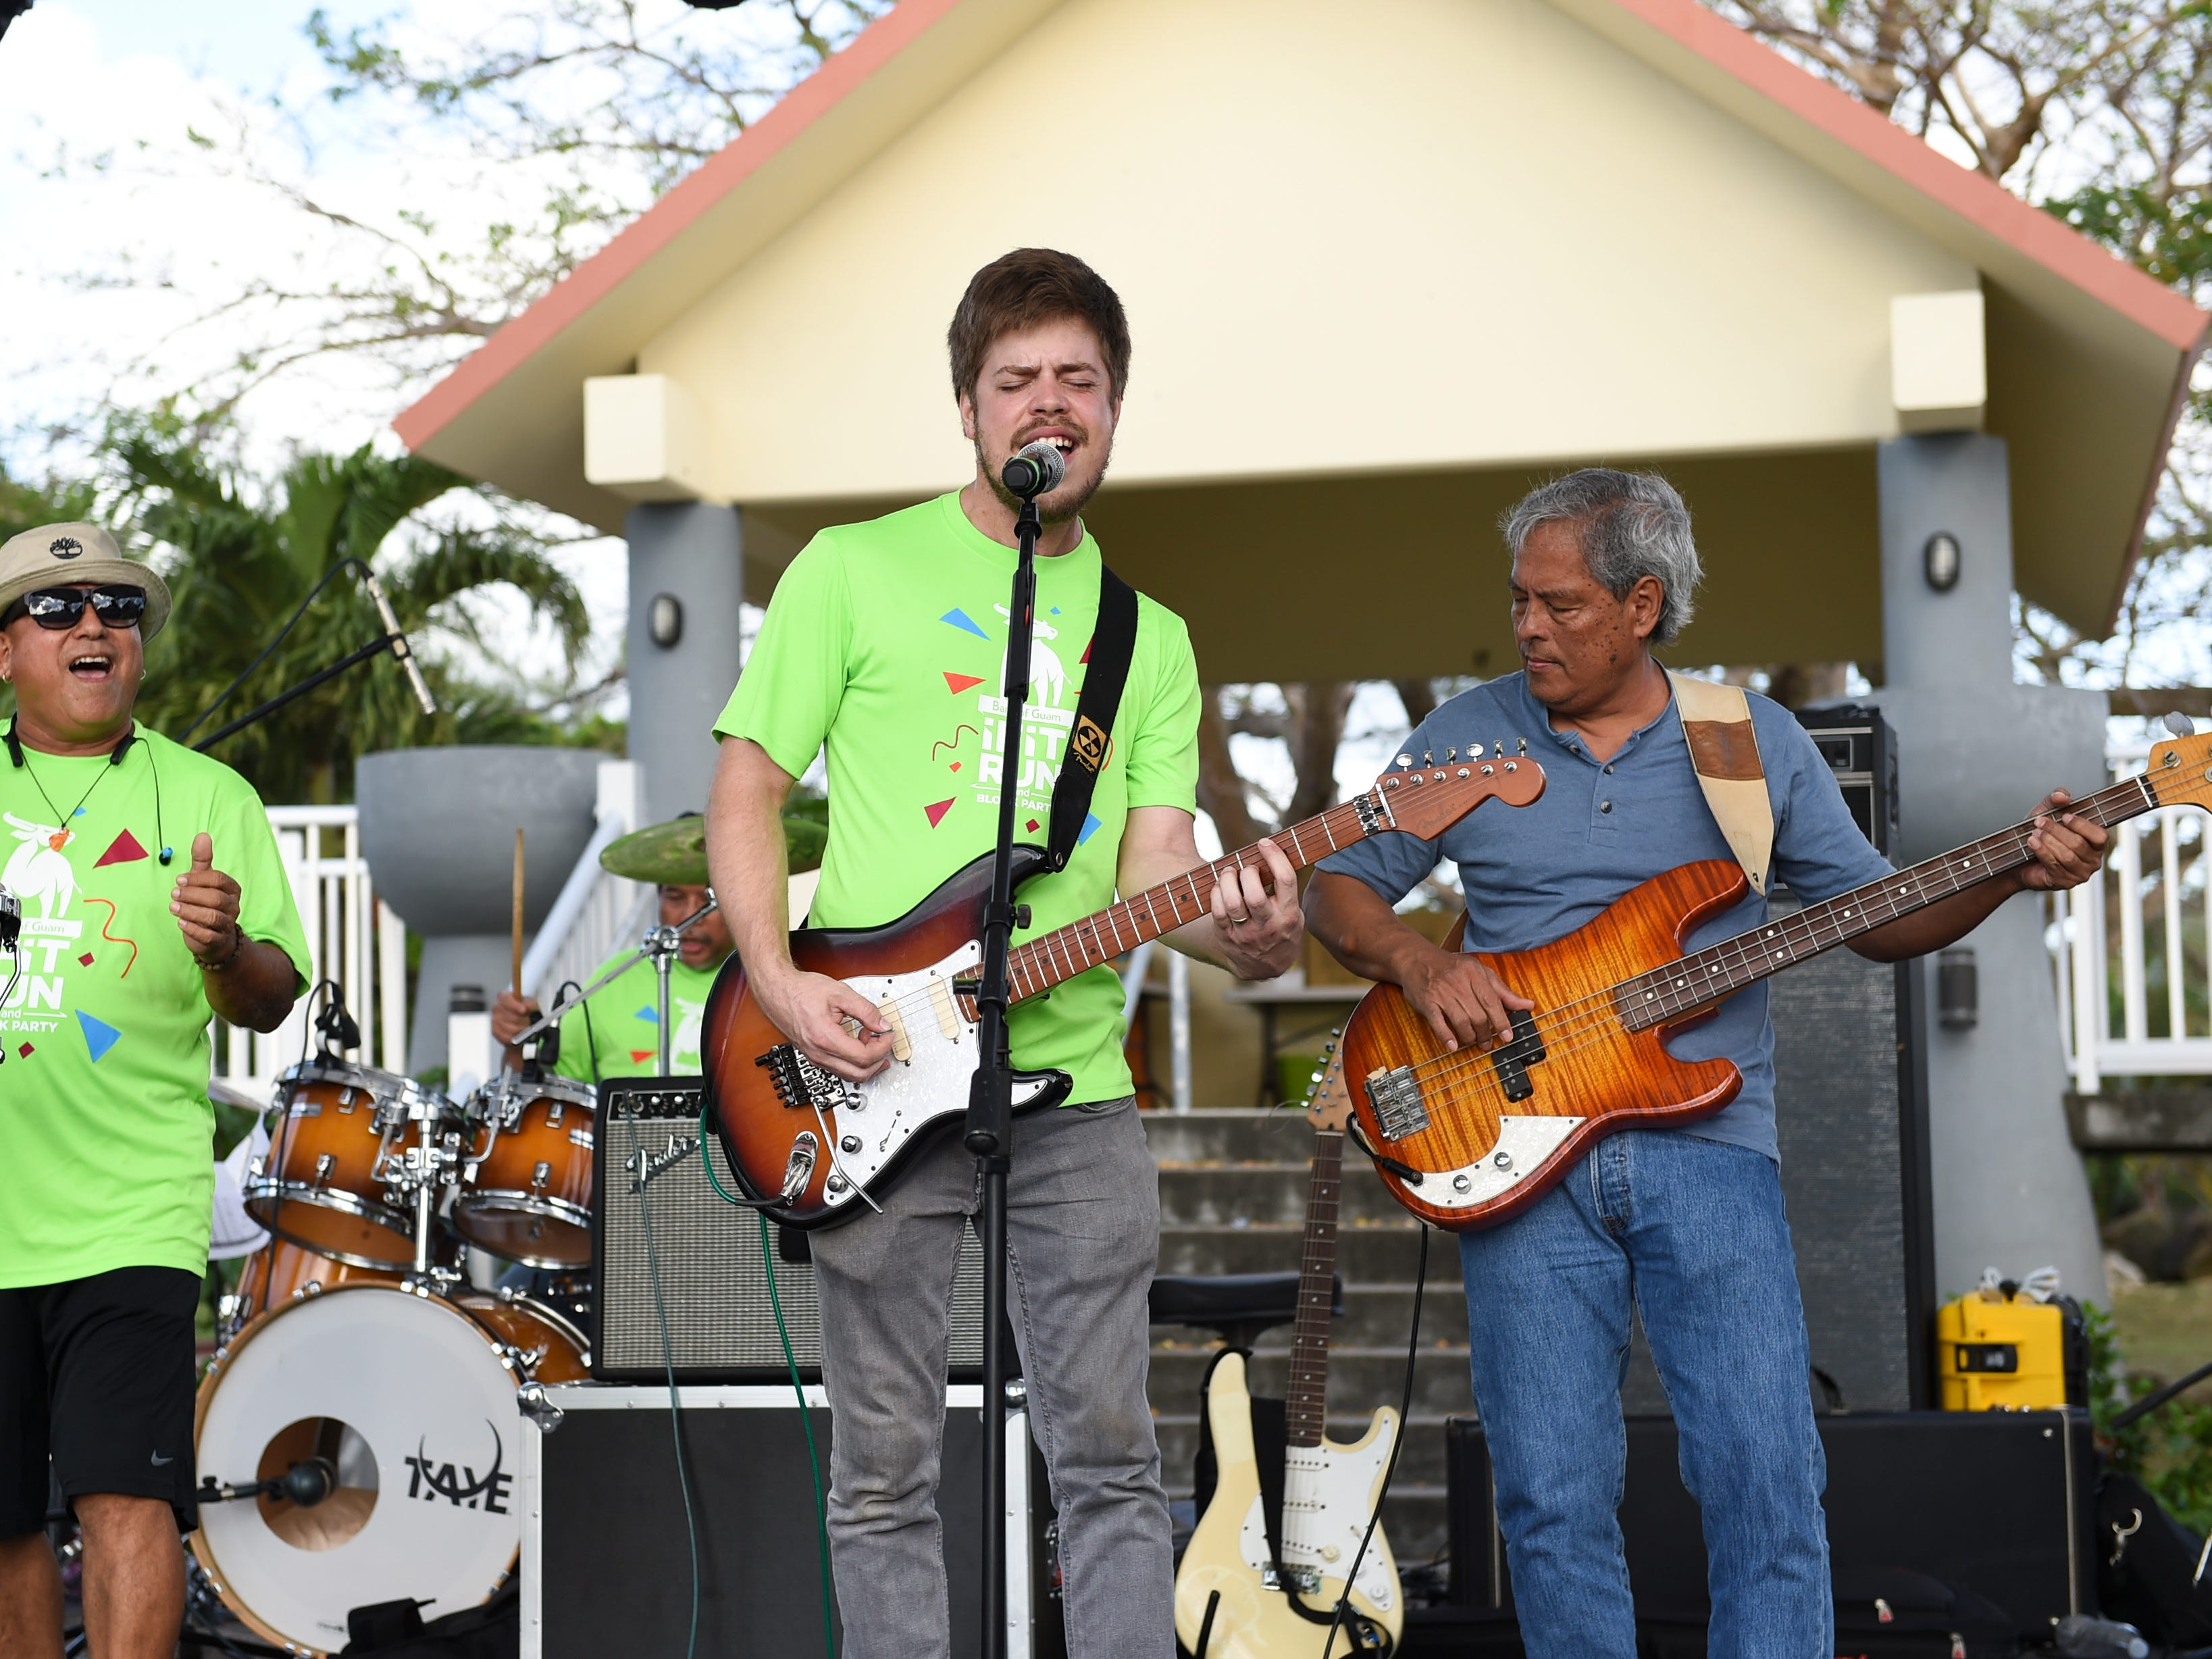 Local band 13° North performs during the Bank of Guam Ifit Run and Block Party at Chamorro Village in Hagåtña, March 9, 2019.